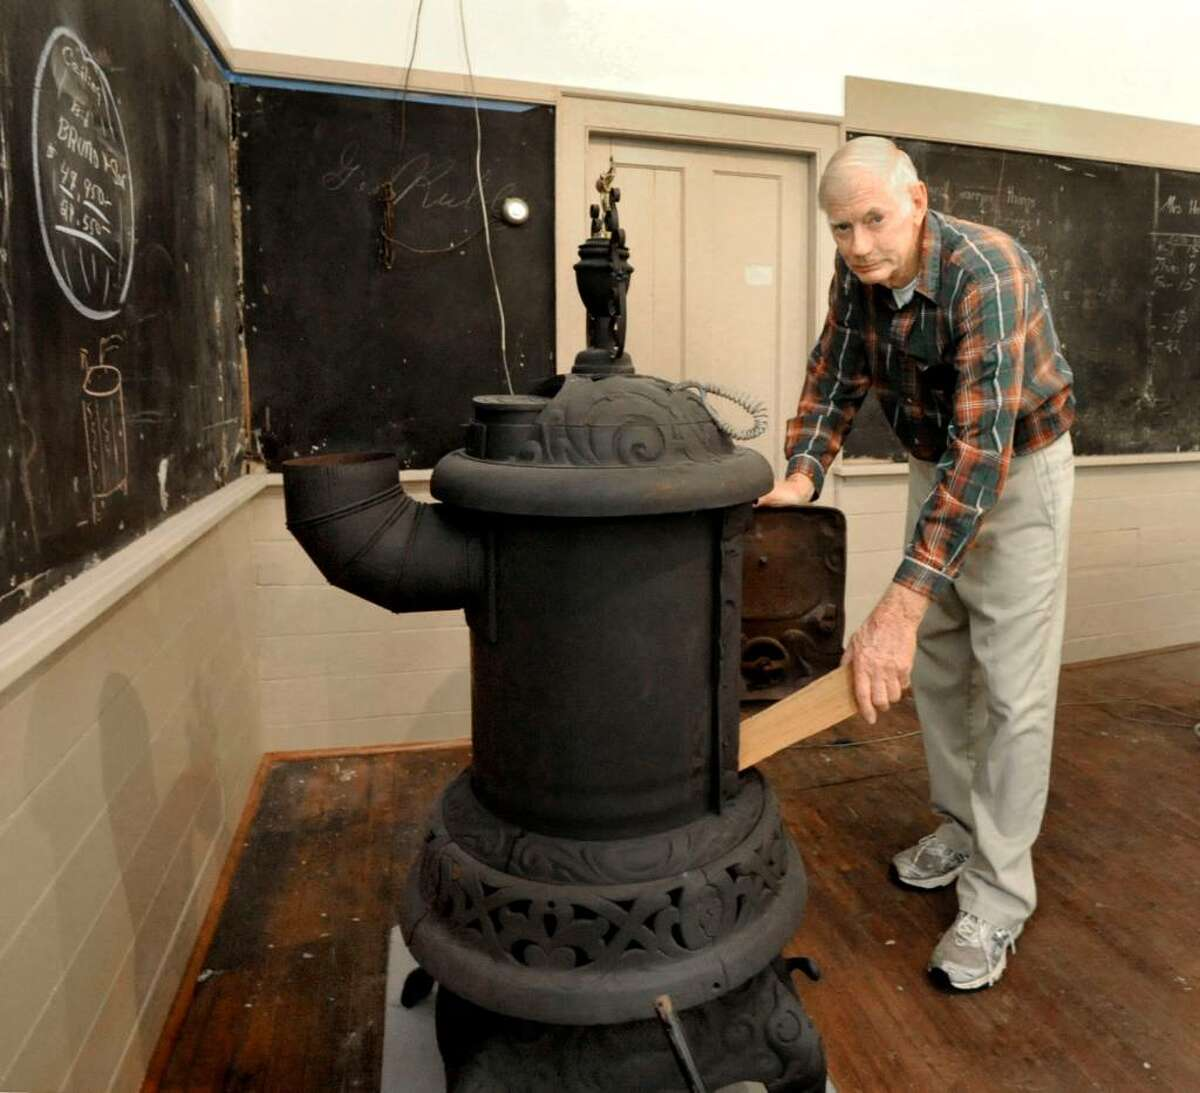 Ed Rockwell, a member of the Plumtrees Landmark Preservation committe,who attended the school from 1941 to 45, loads wood into a vintage woodstove to create a sense of realism inside the Bethel school on monday.